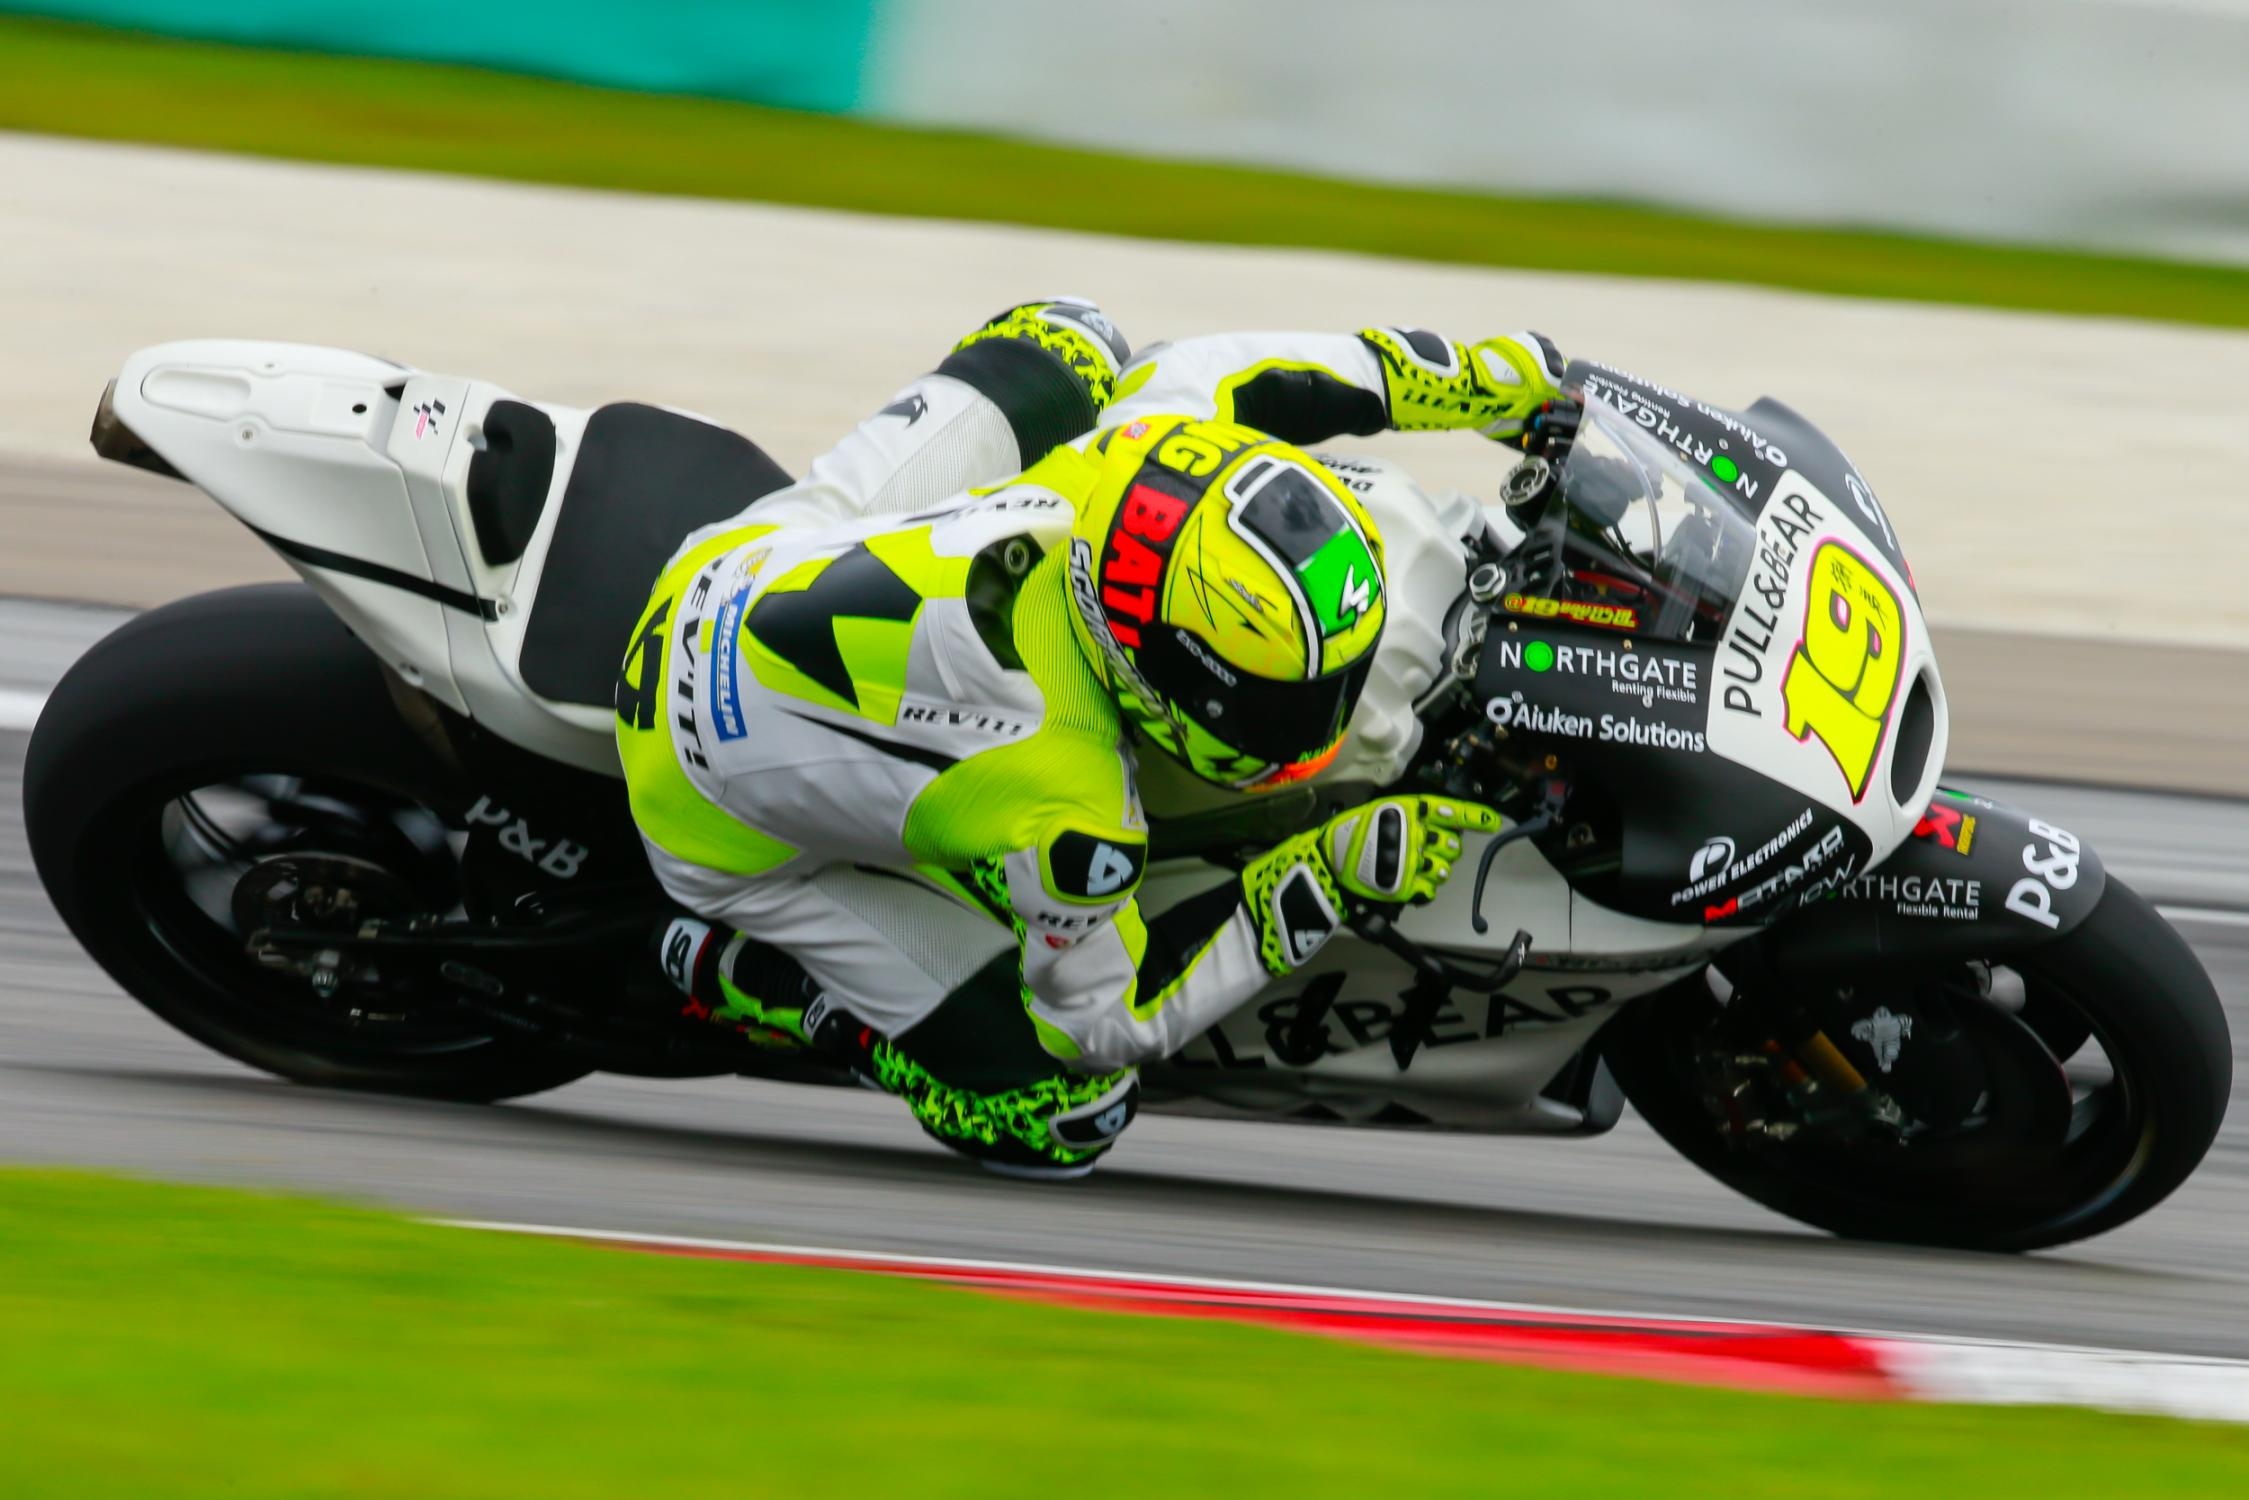 [MotoGP] Test Sepang 19-alvaro-bautista-esp_gp_0546.gallery_full_top_fullscreen